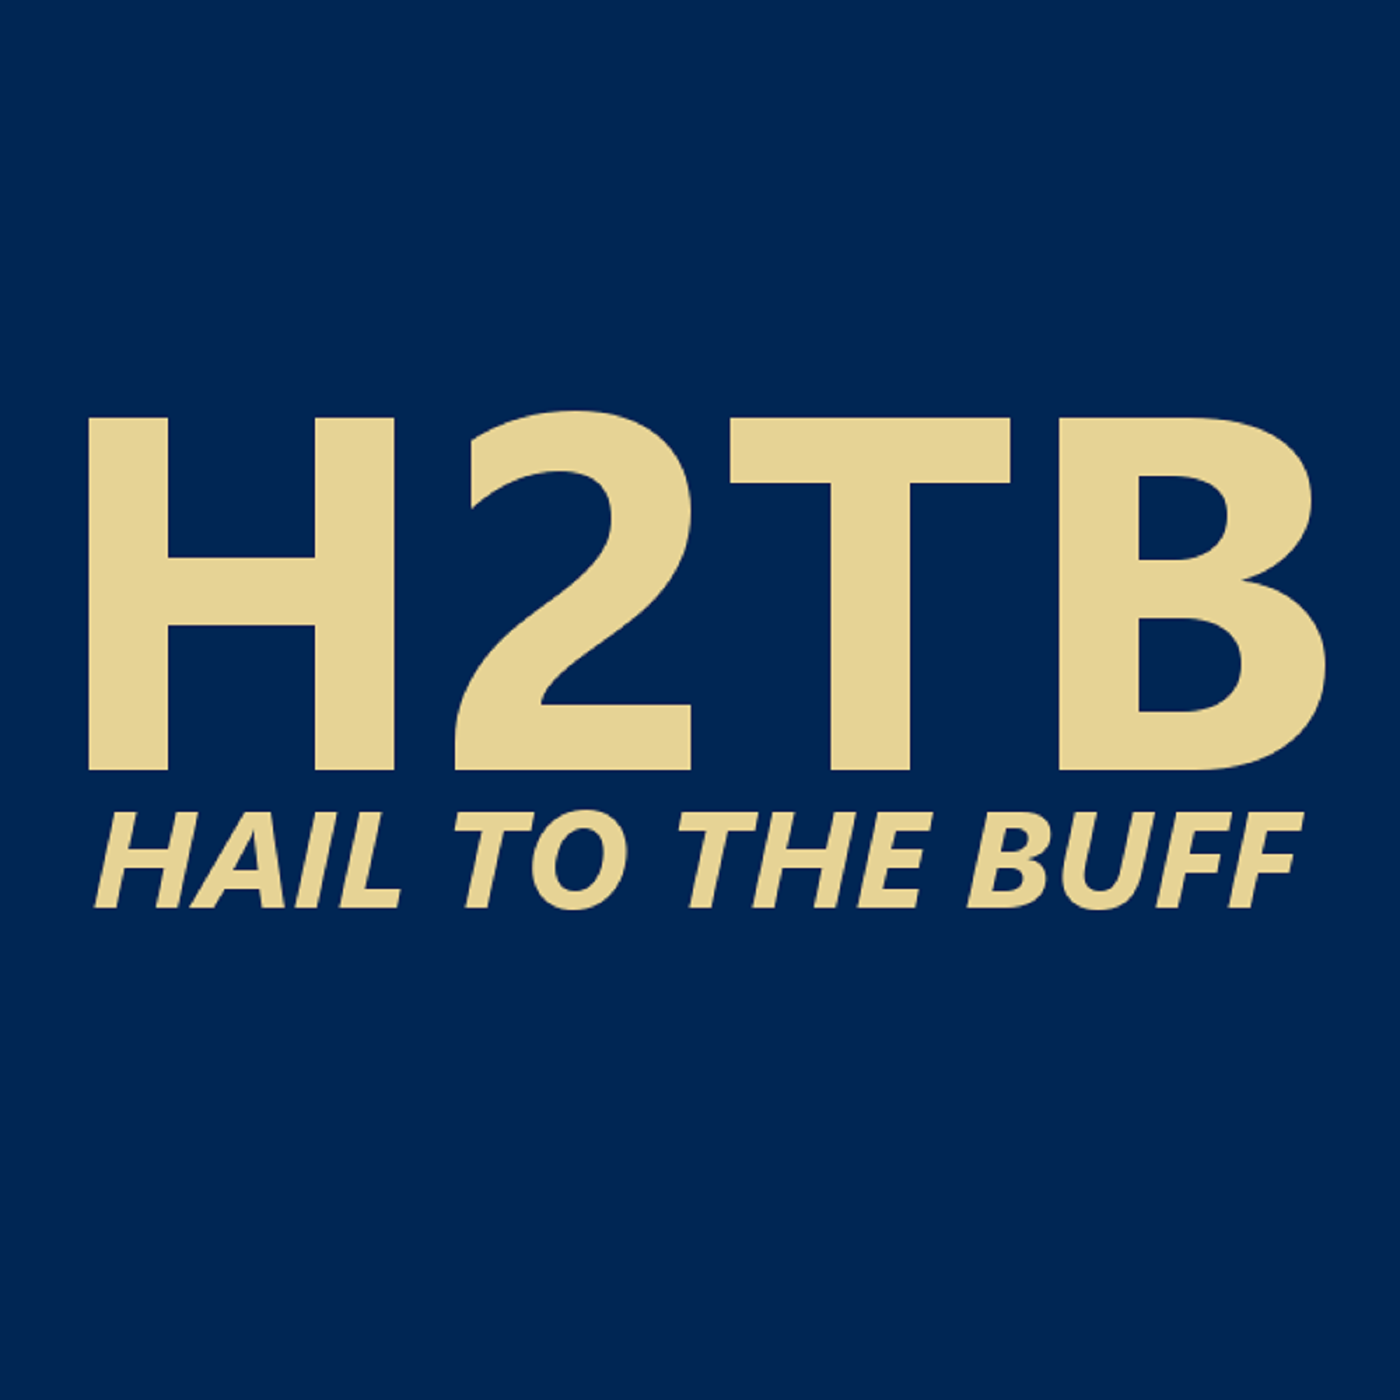 Hail to the Buff